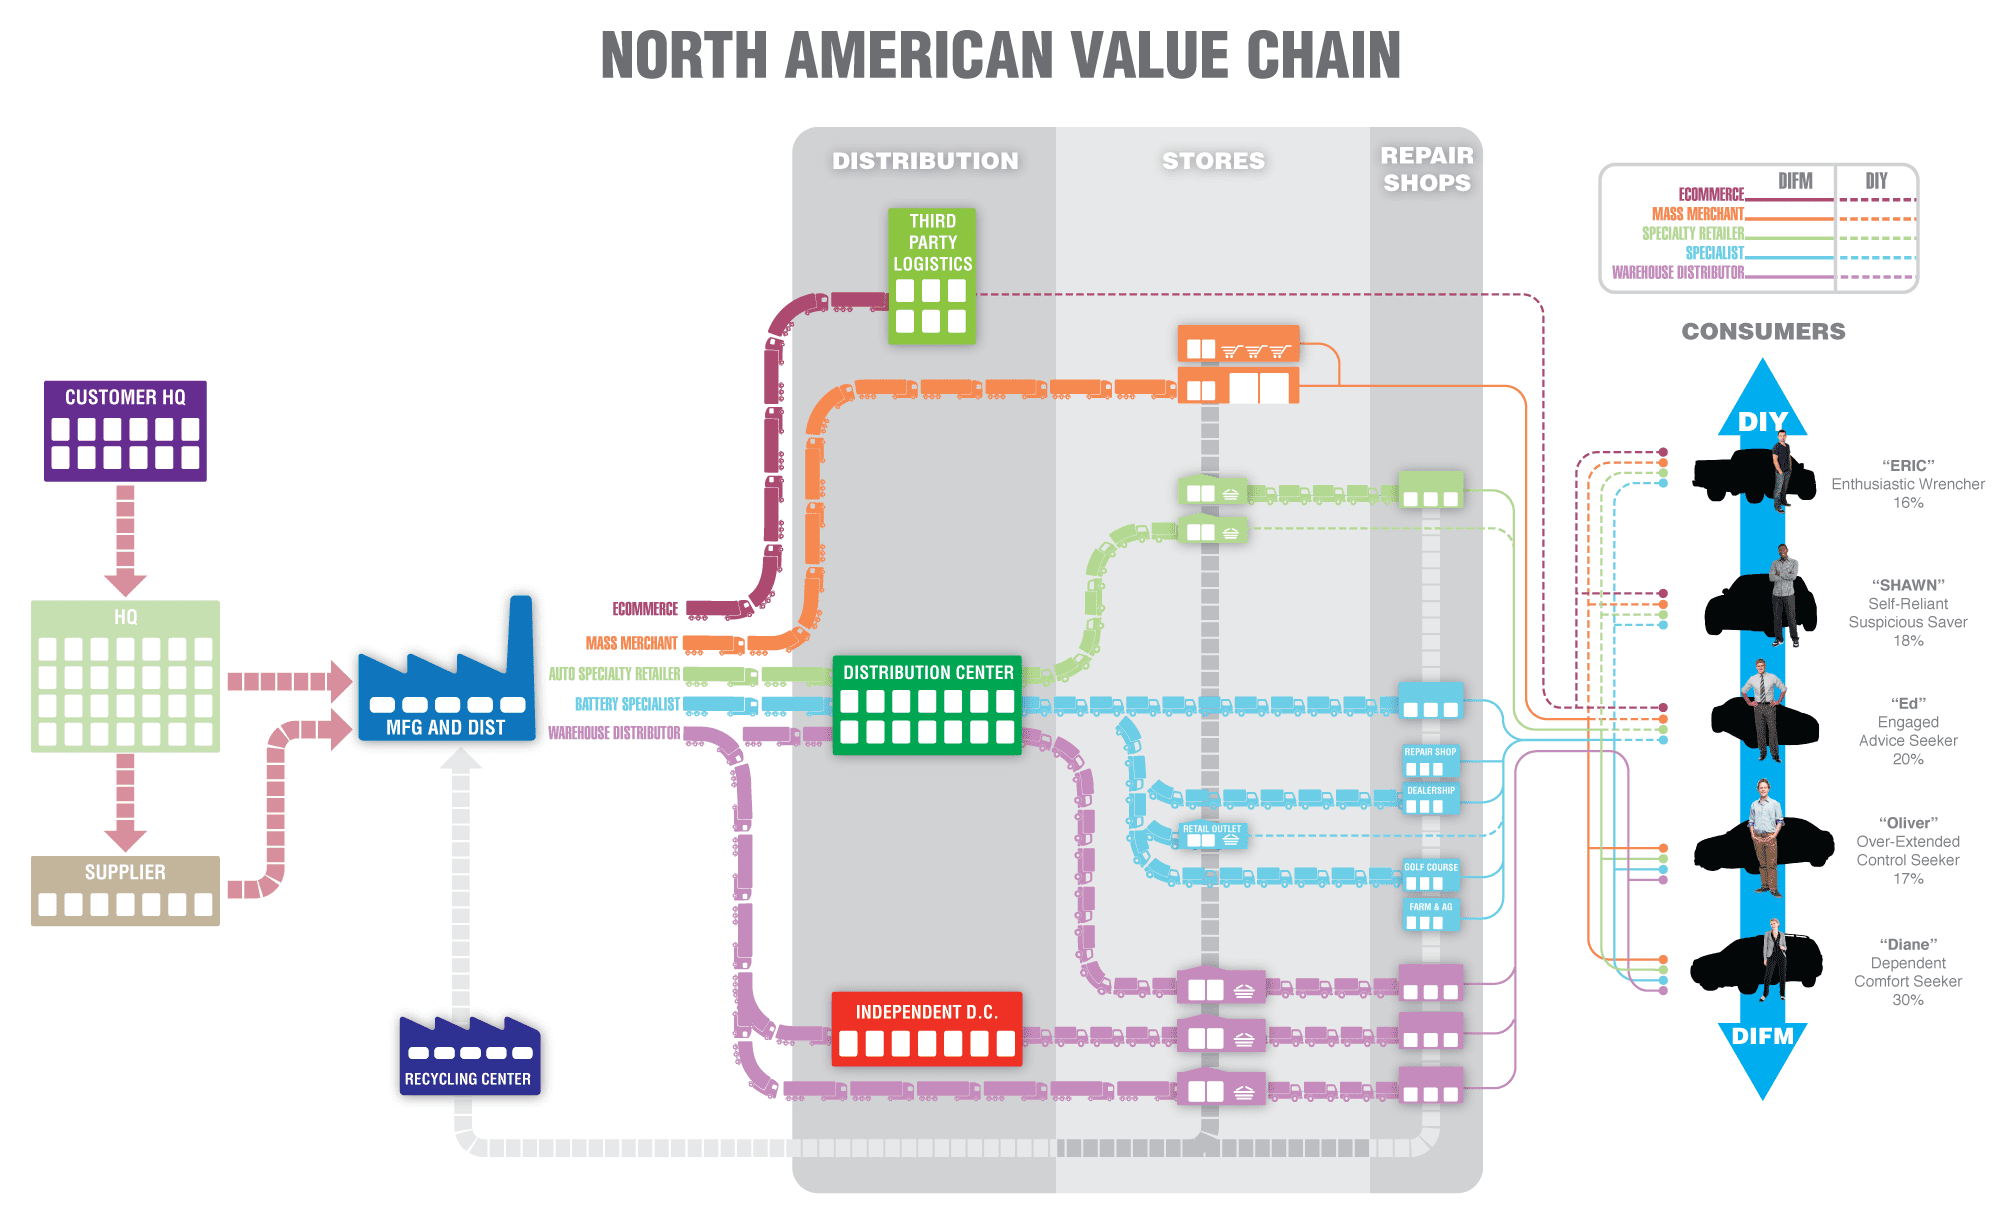 museum value chain Museum shows of artists' works in private collections, or shows of newly purchased work, validates the works by the same artist (or movement, technique, etc) currently in the marketplace and increases the value by being in prestigious museum collections.